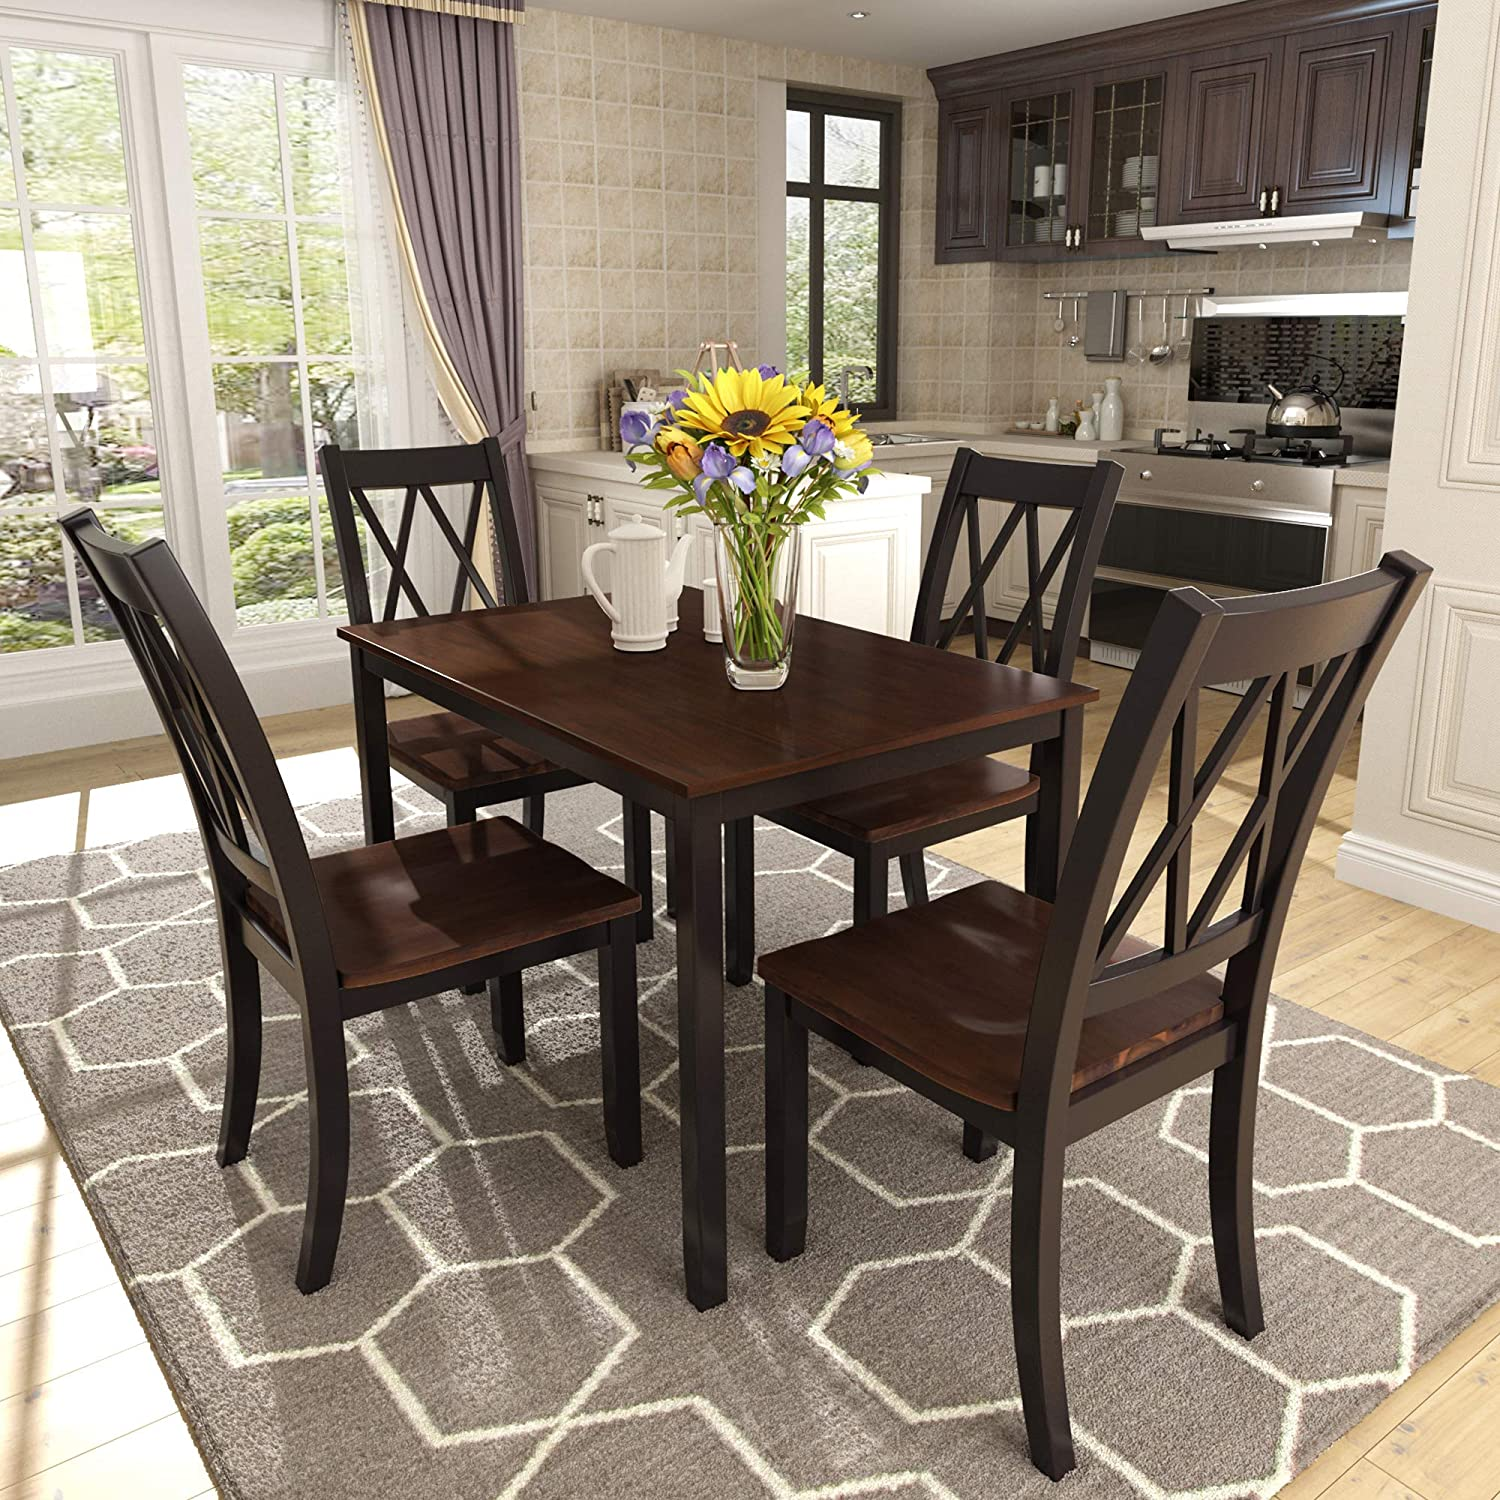 Buy Harper & Bright Designs 9 Piece Wood Dining Table Set for 9 ...